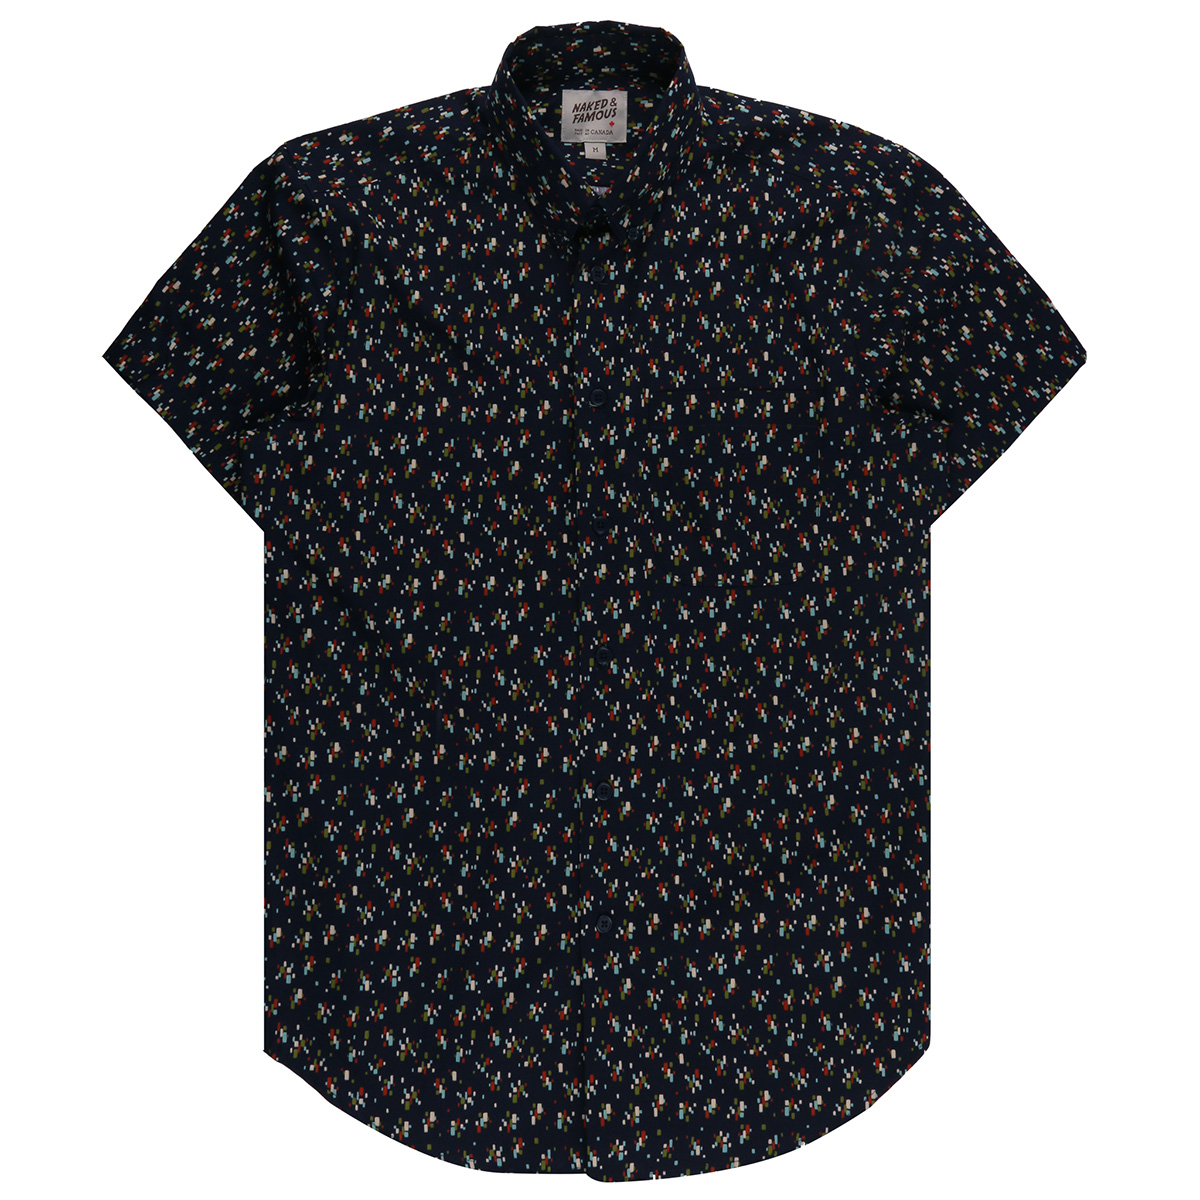 VINTAGE MOD PRINT - NAVY - Short Sleeve Easy Shirt